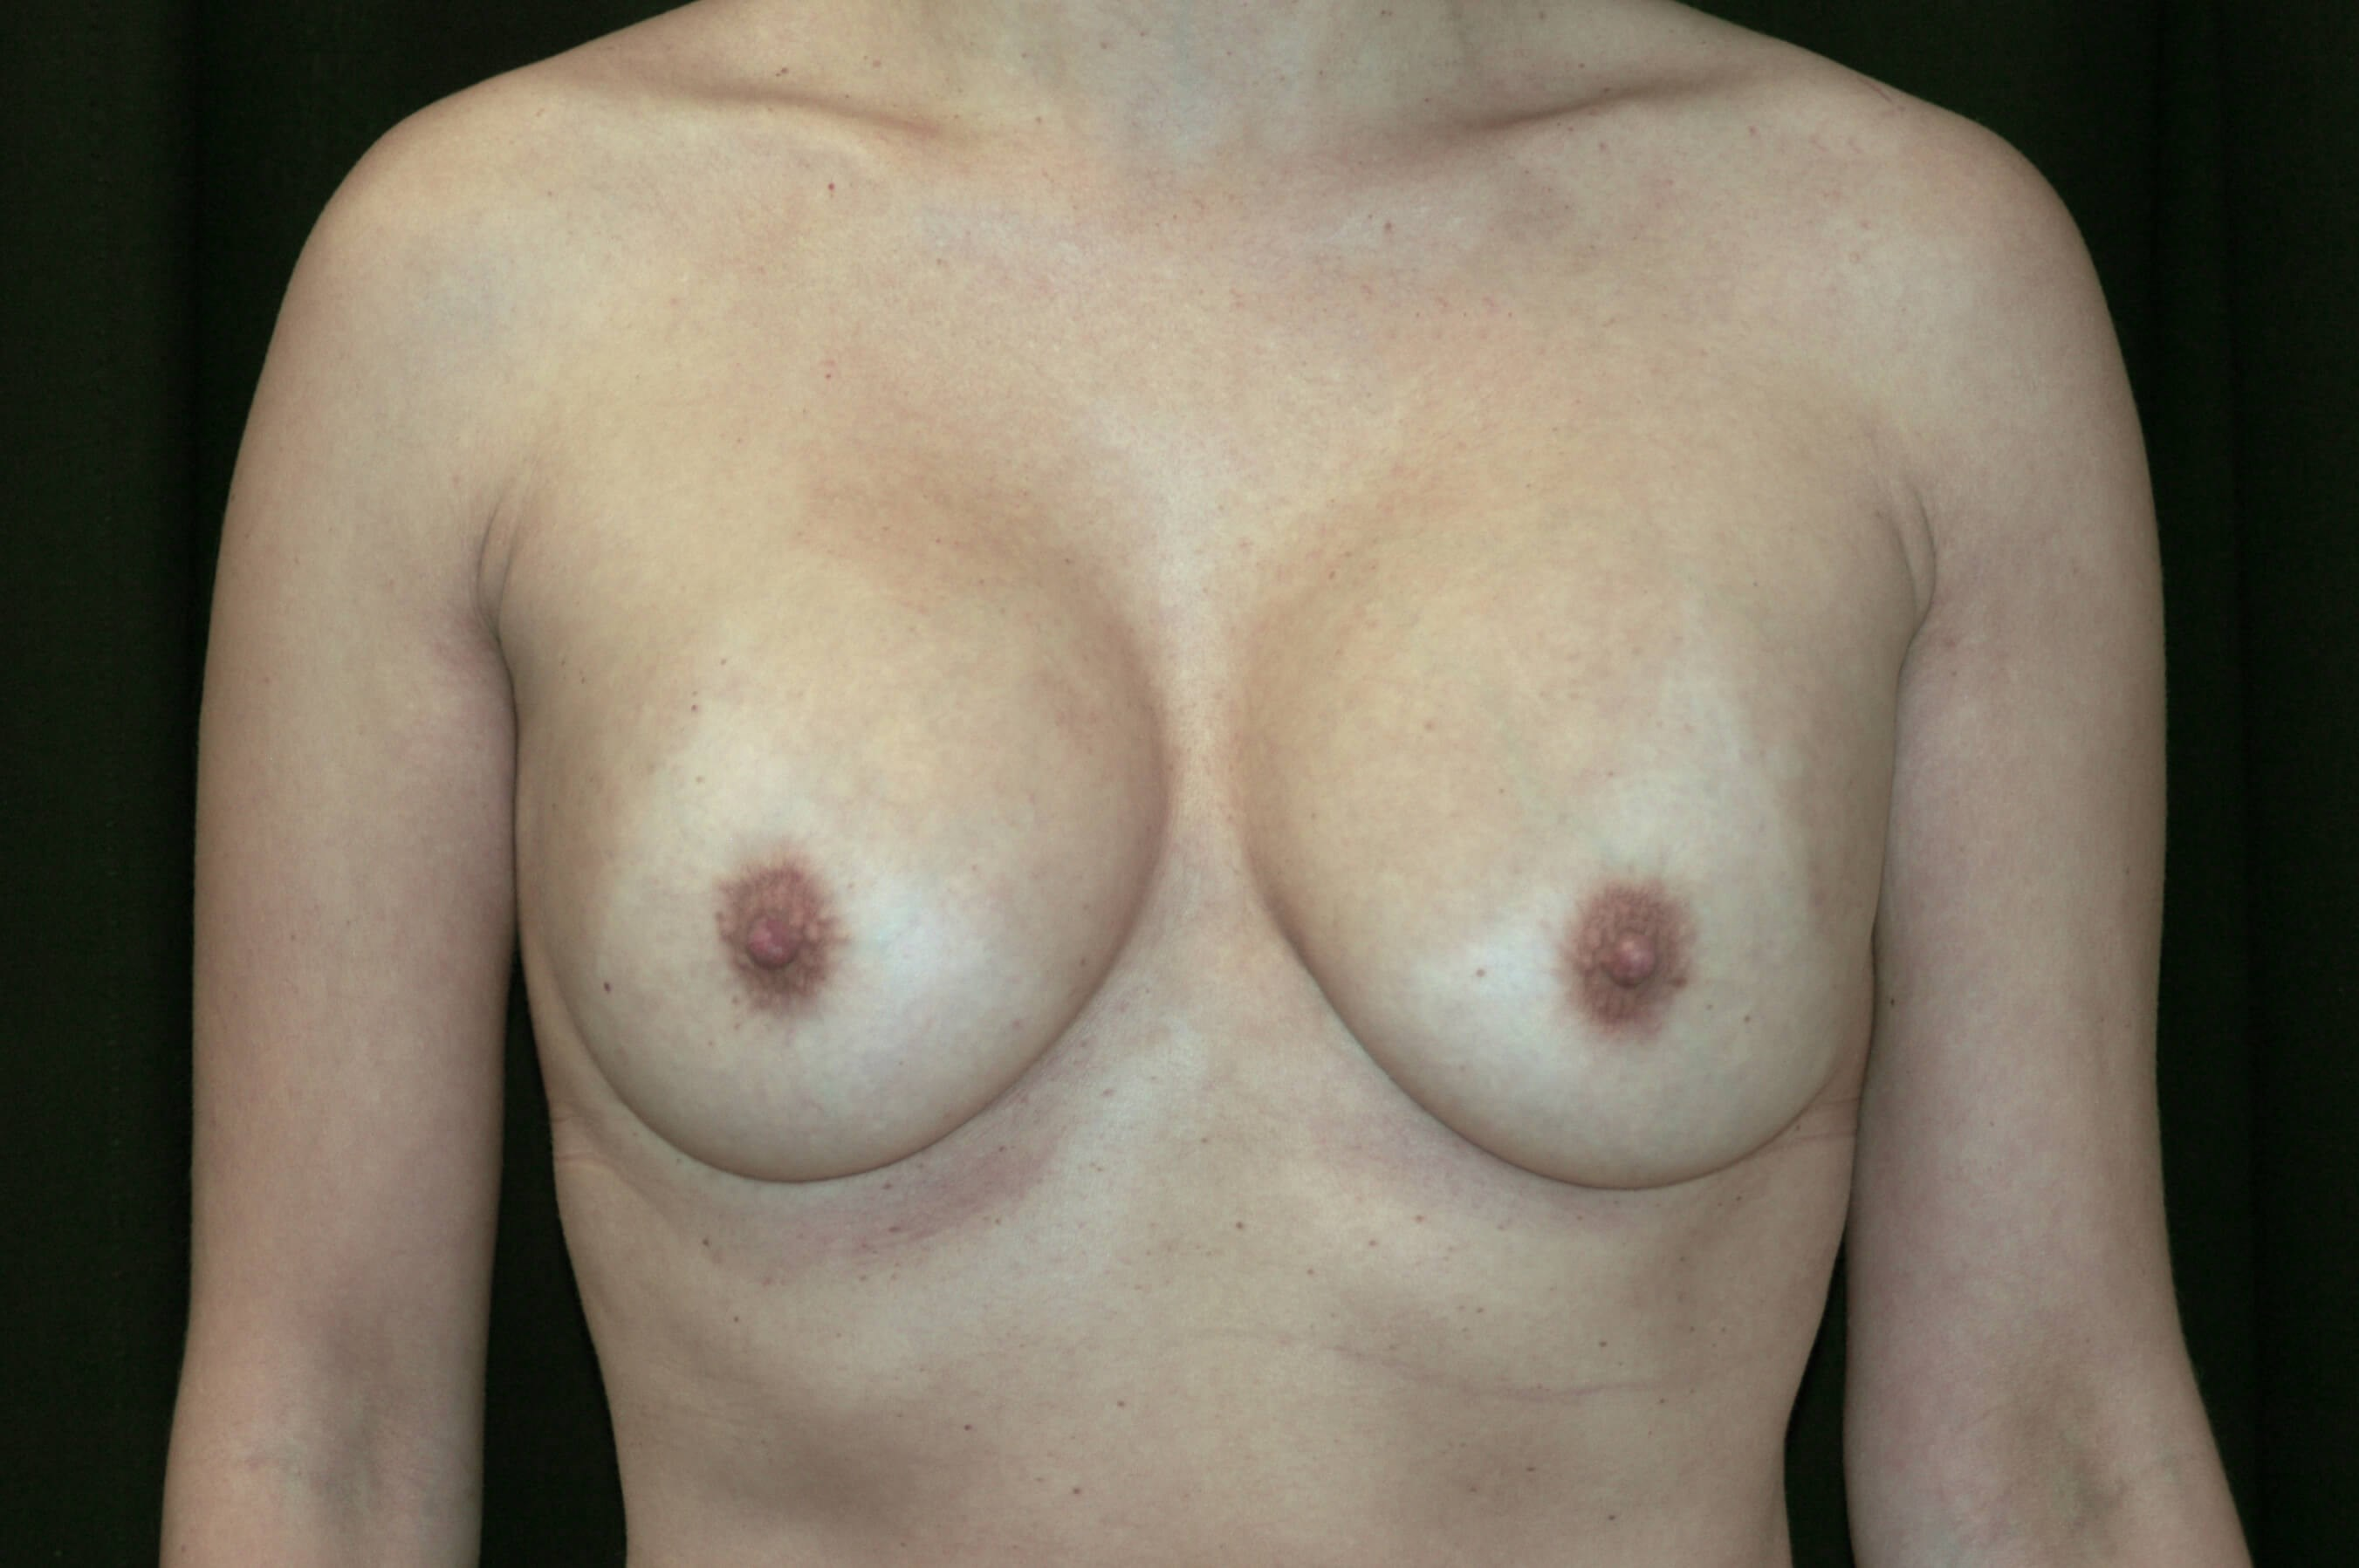 DALLAS TEXAS WOMAN HAS BREAST REVISION SURGERY